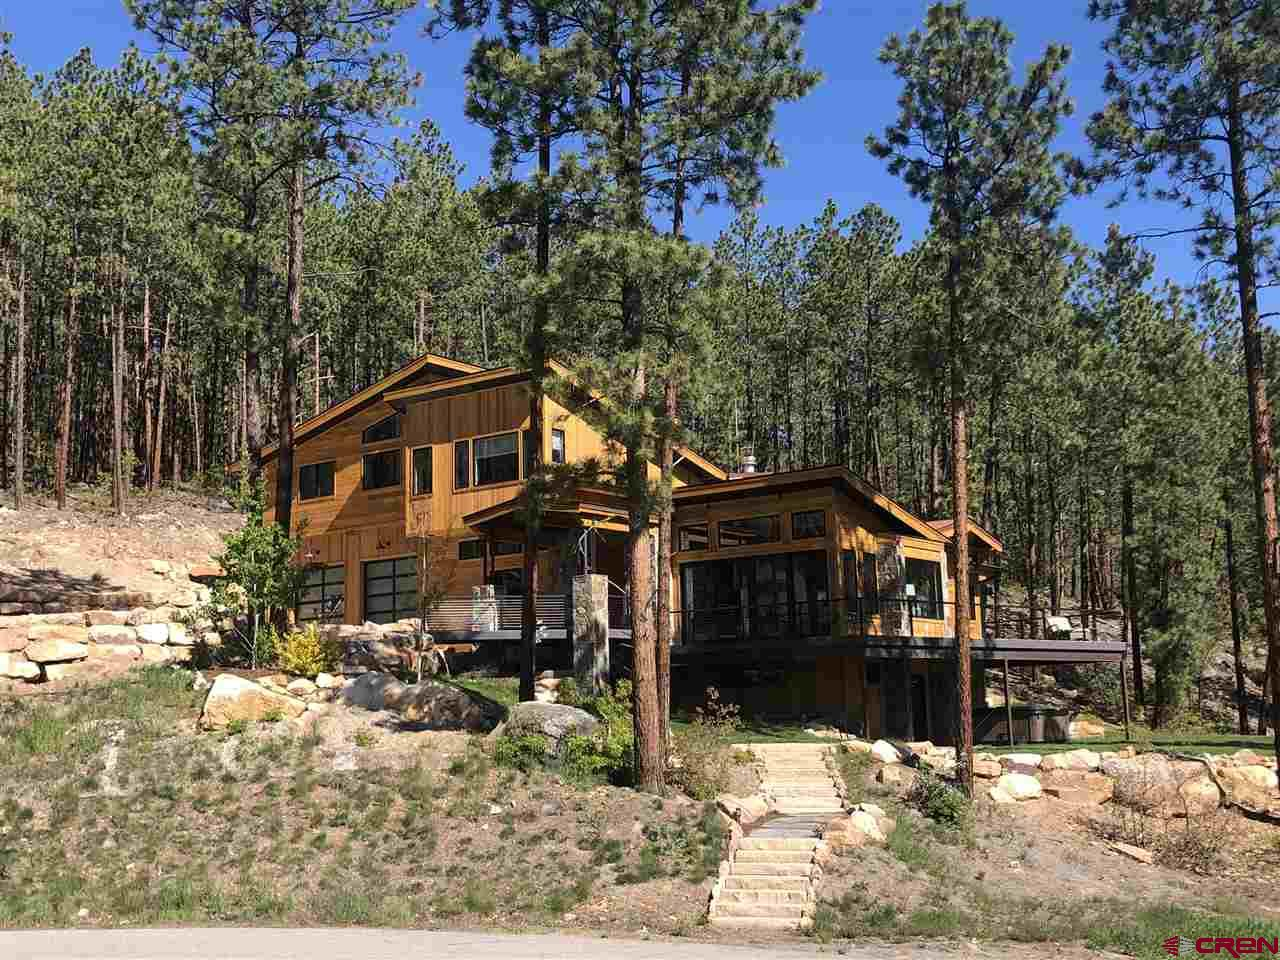 681 Monarch Crest Trail, Durango, CO 81301